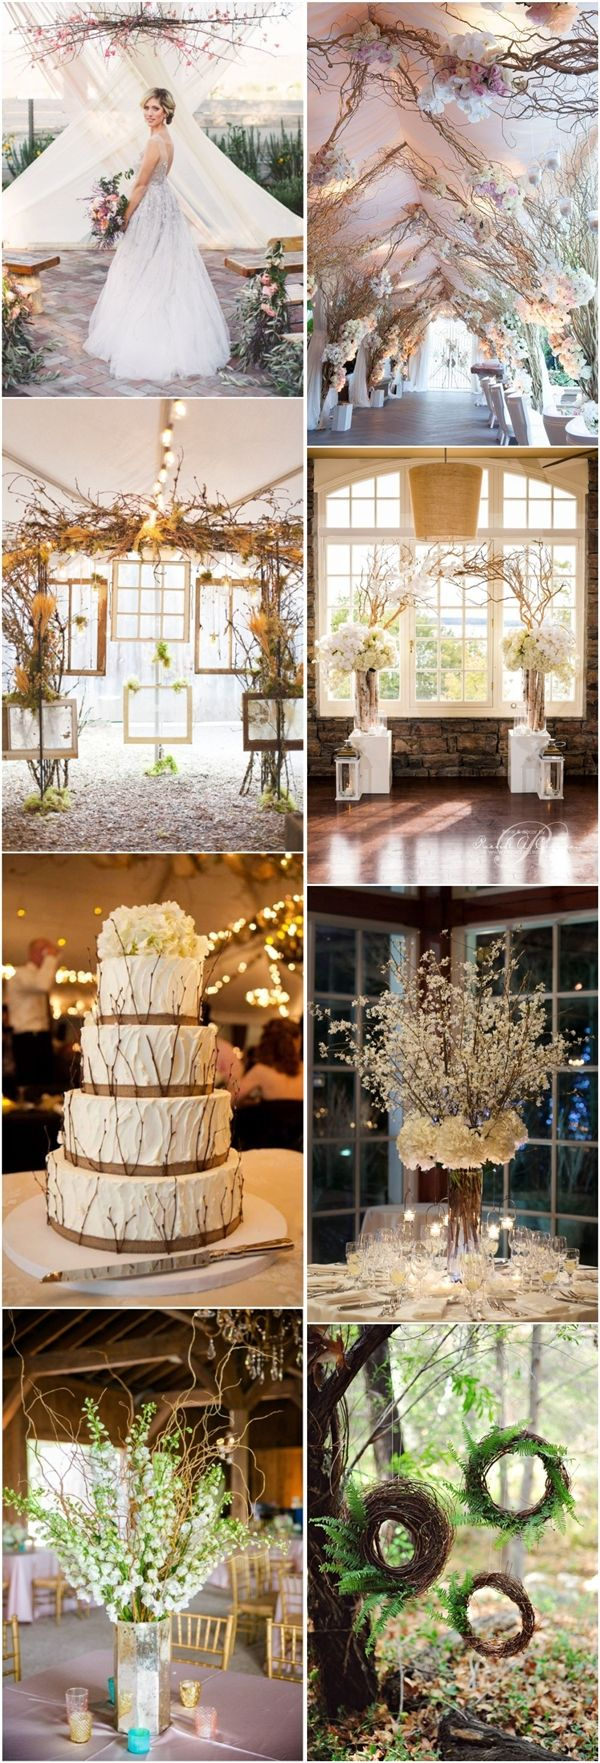 Wedding decorations hall december 2018  Chic Rustic Wedding Ideas with Tree Branches  Boda Ideas para